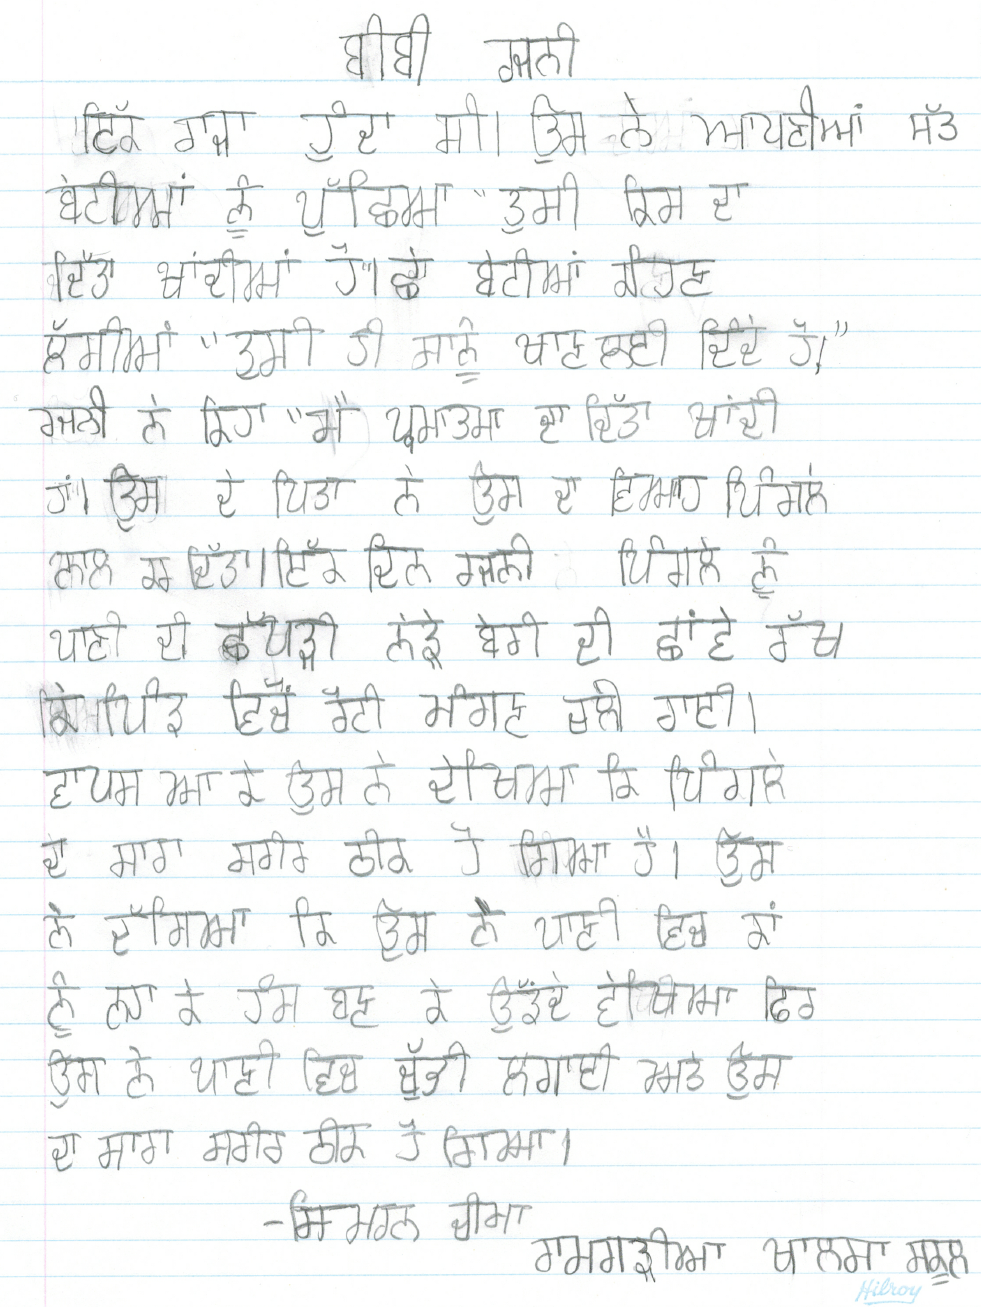 Raksha bandhan essay in punjabi language to english translation